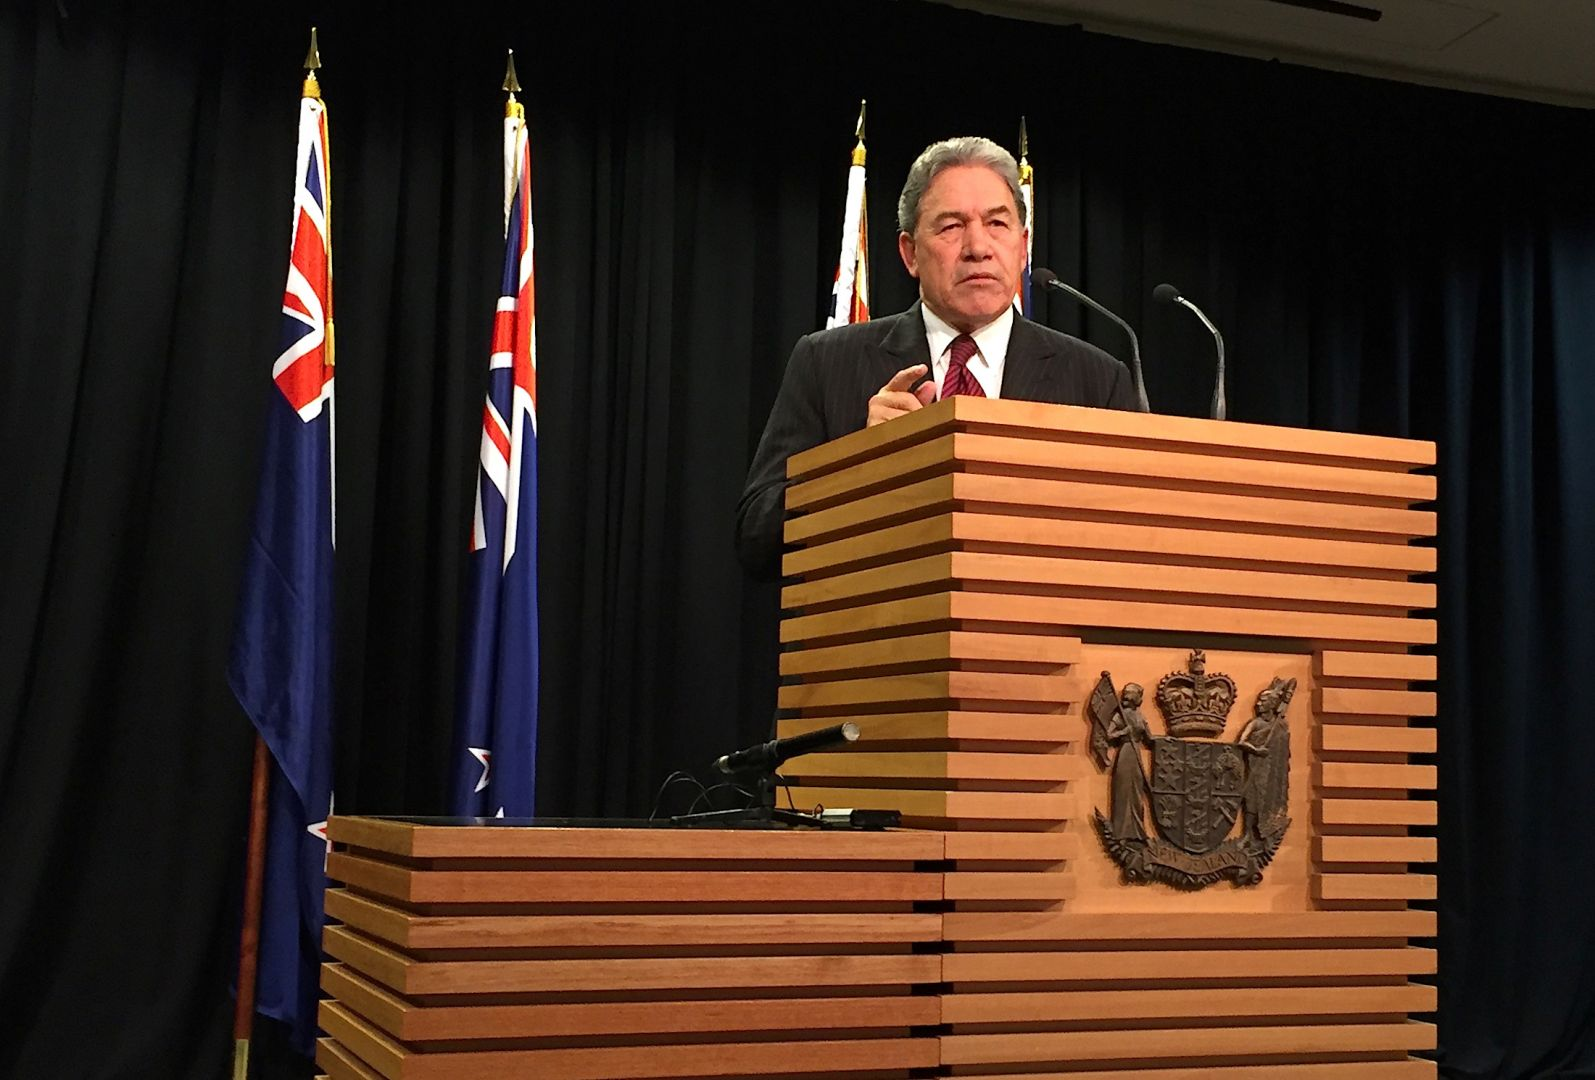 New Zealand First's Winston Peters says a coalition announcement must wait